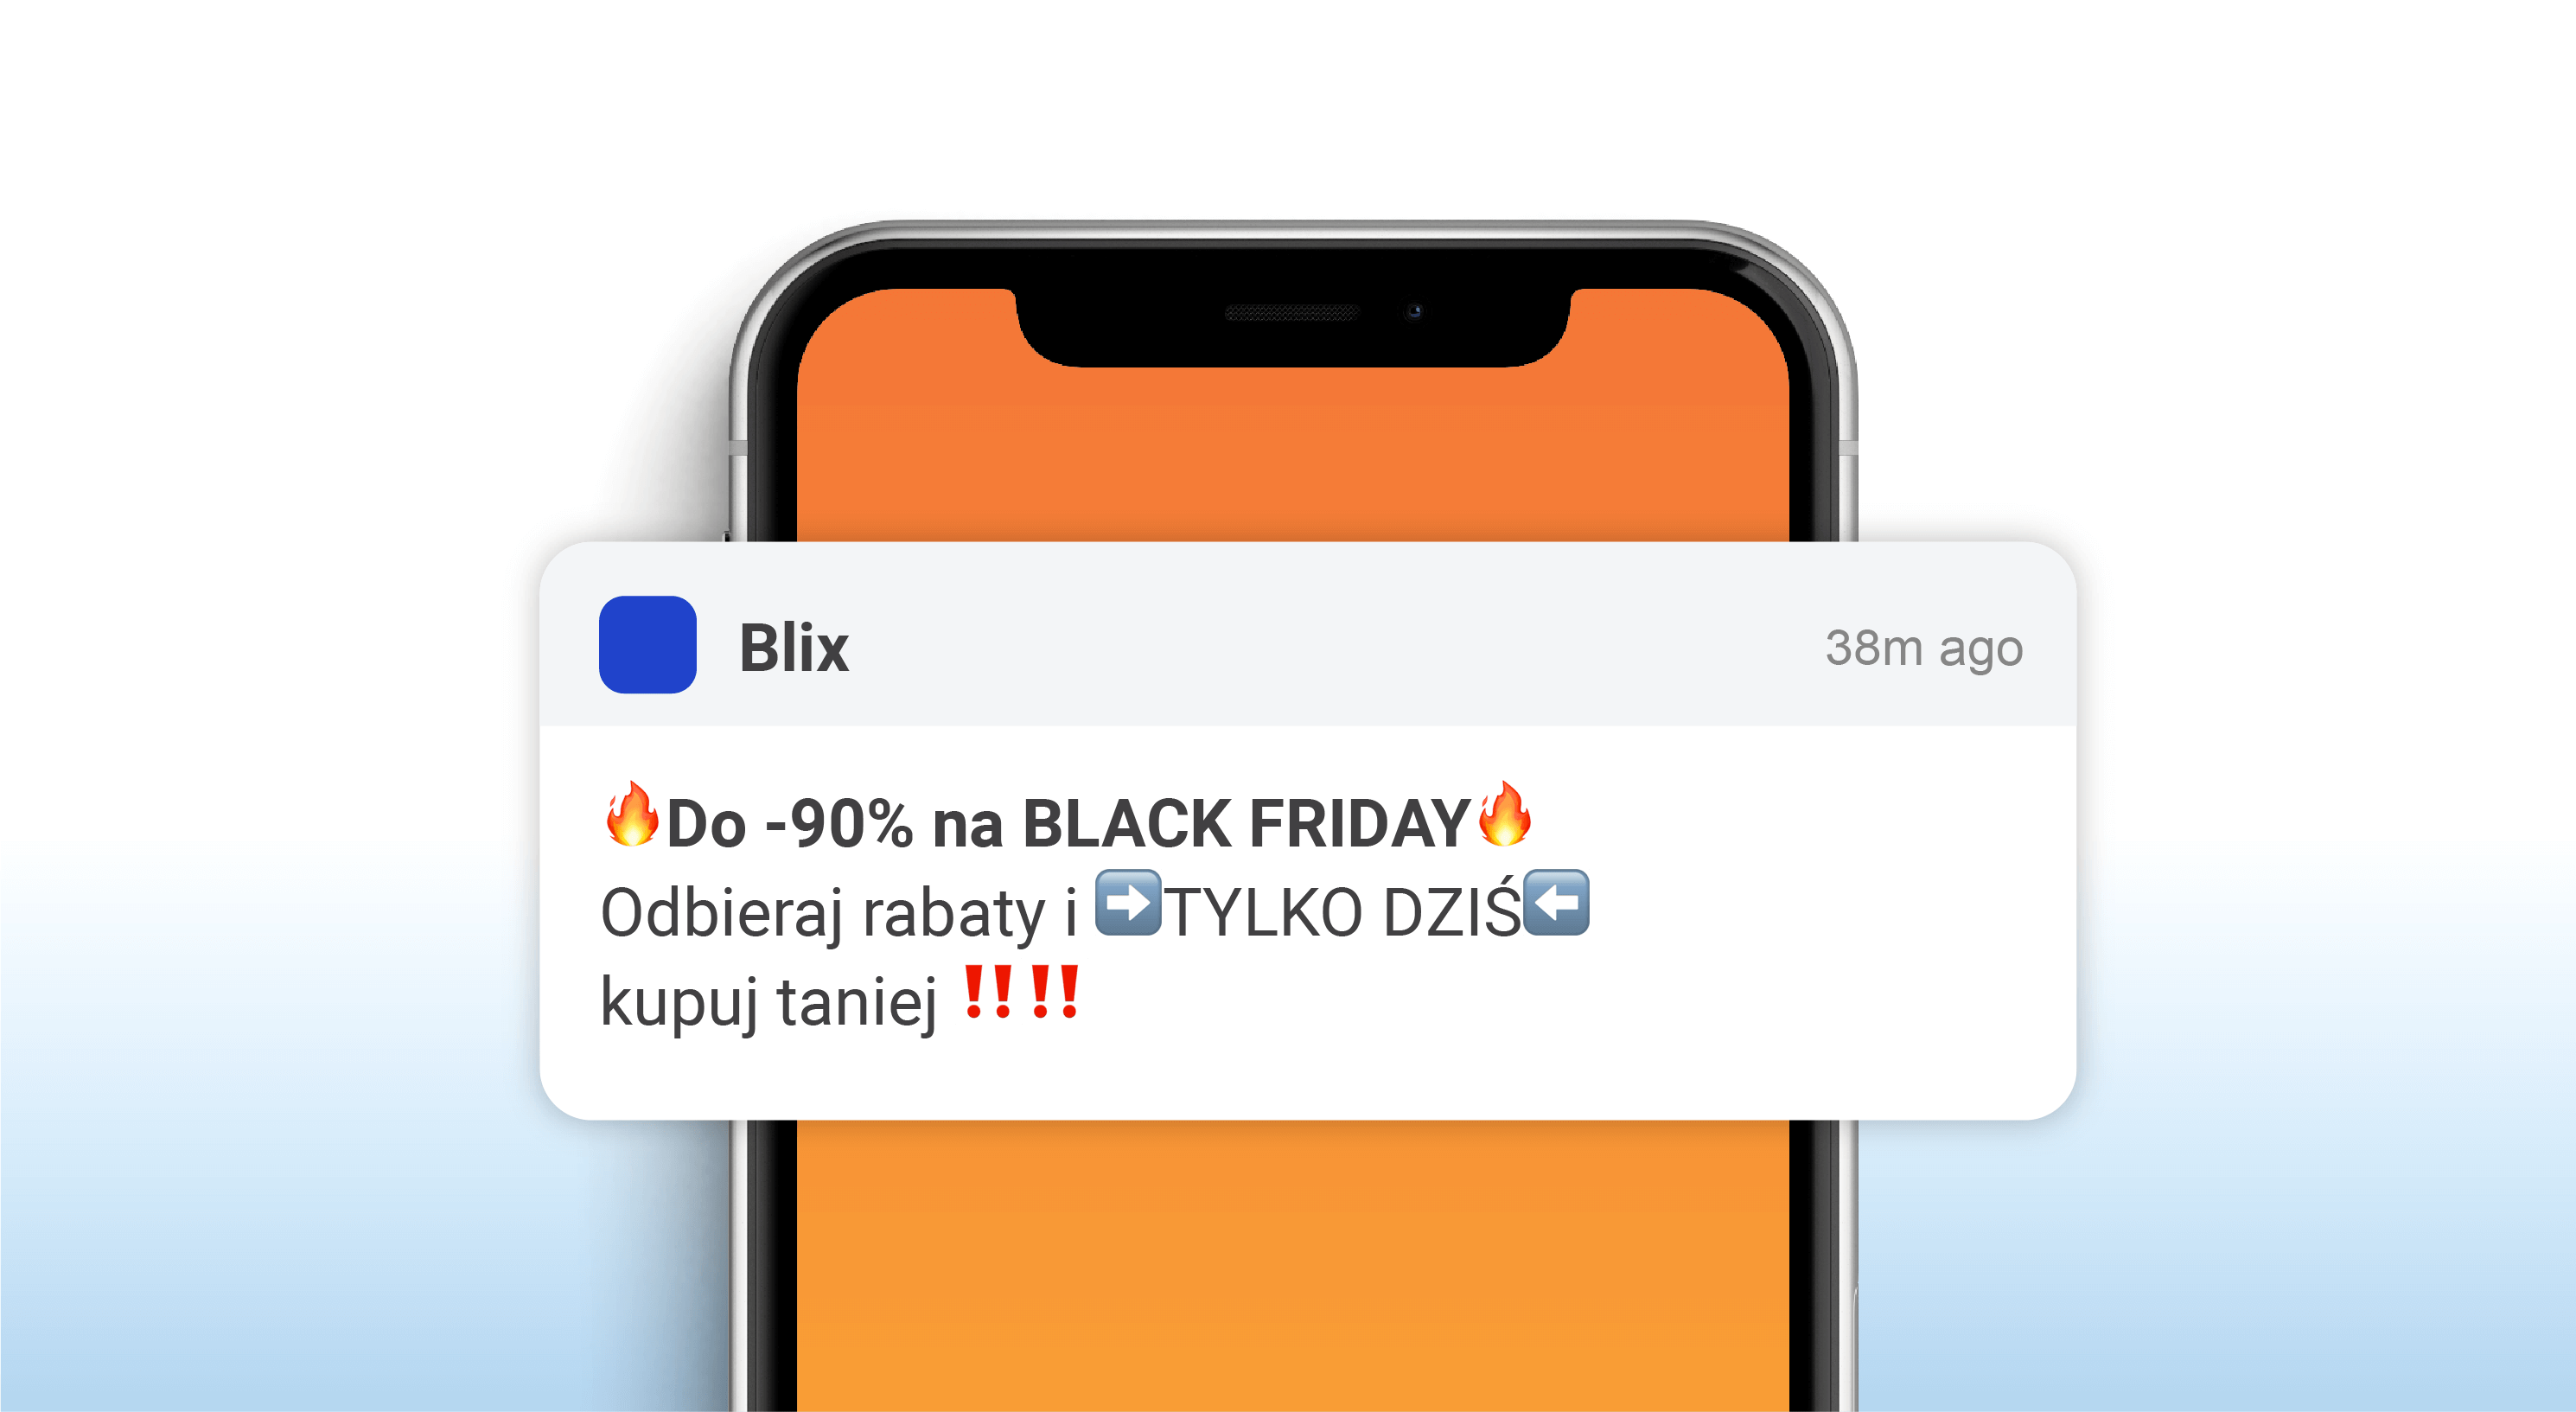 Blix Push Notification